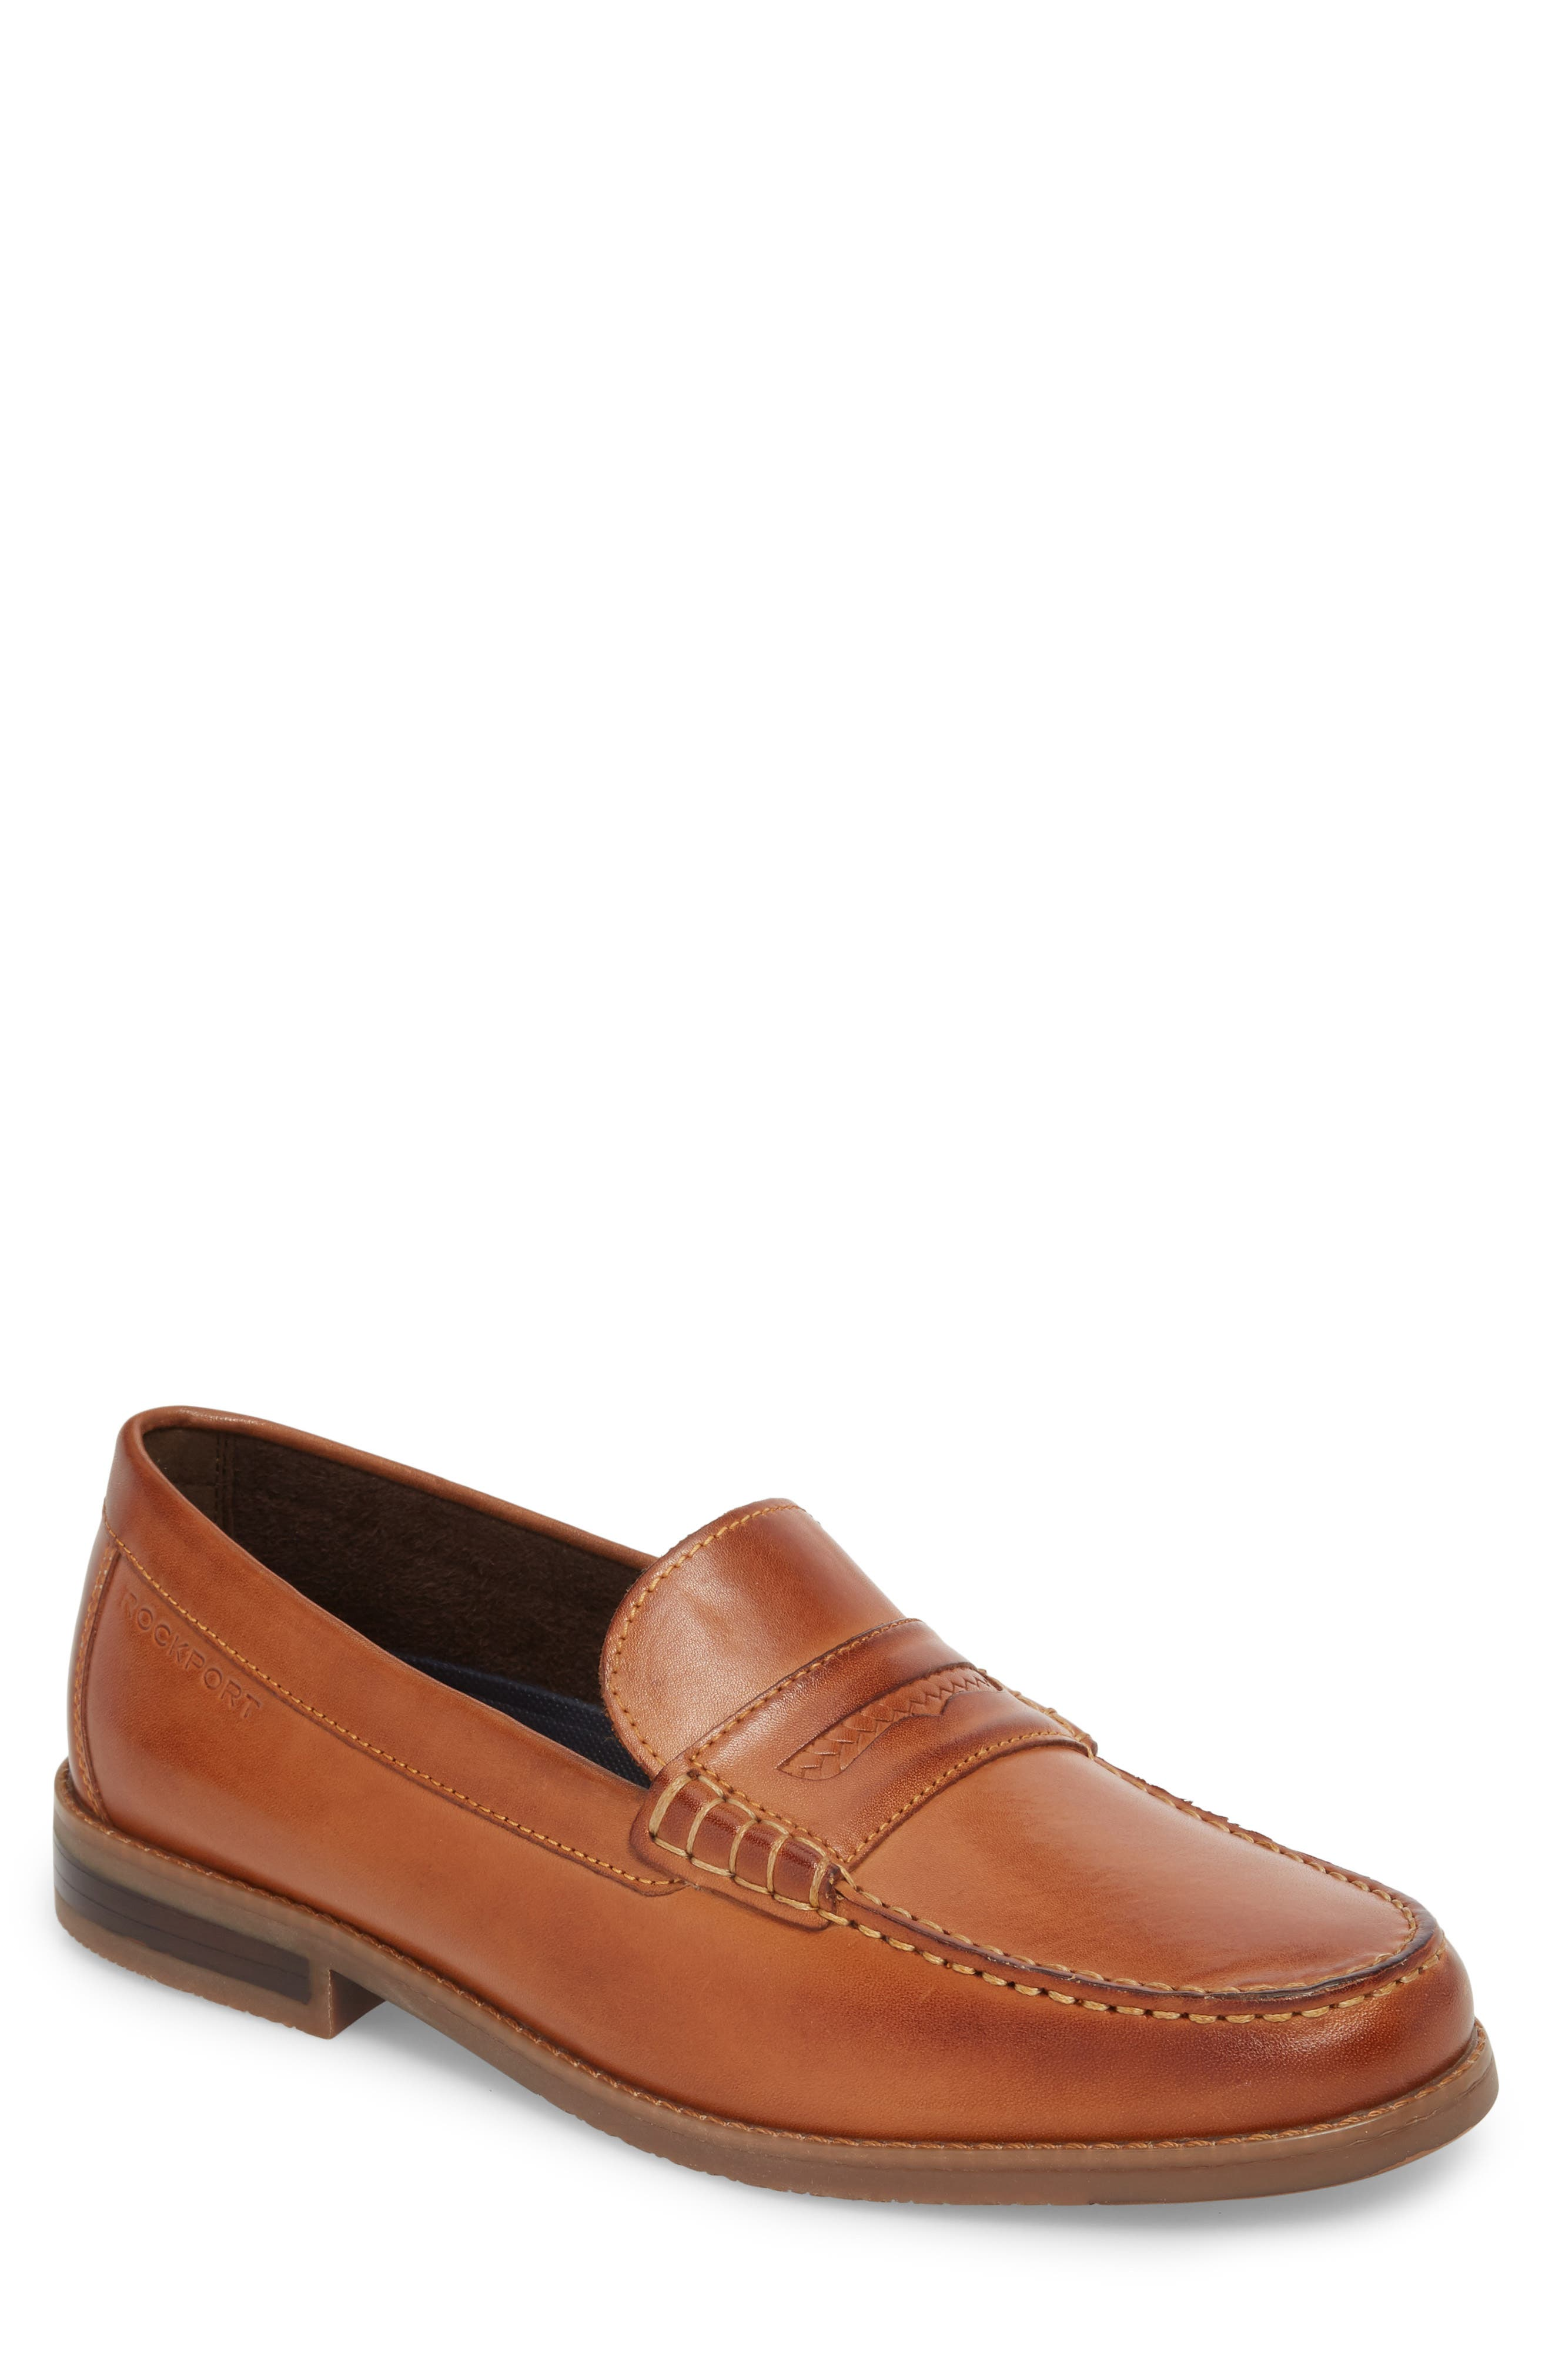 Cayleb Moc Toe Penny Loafer,                         Main,                         color, Cognac Leather